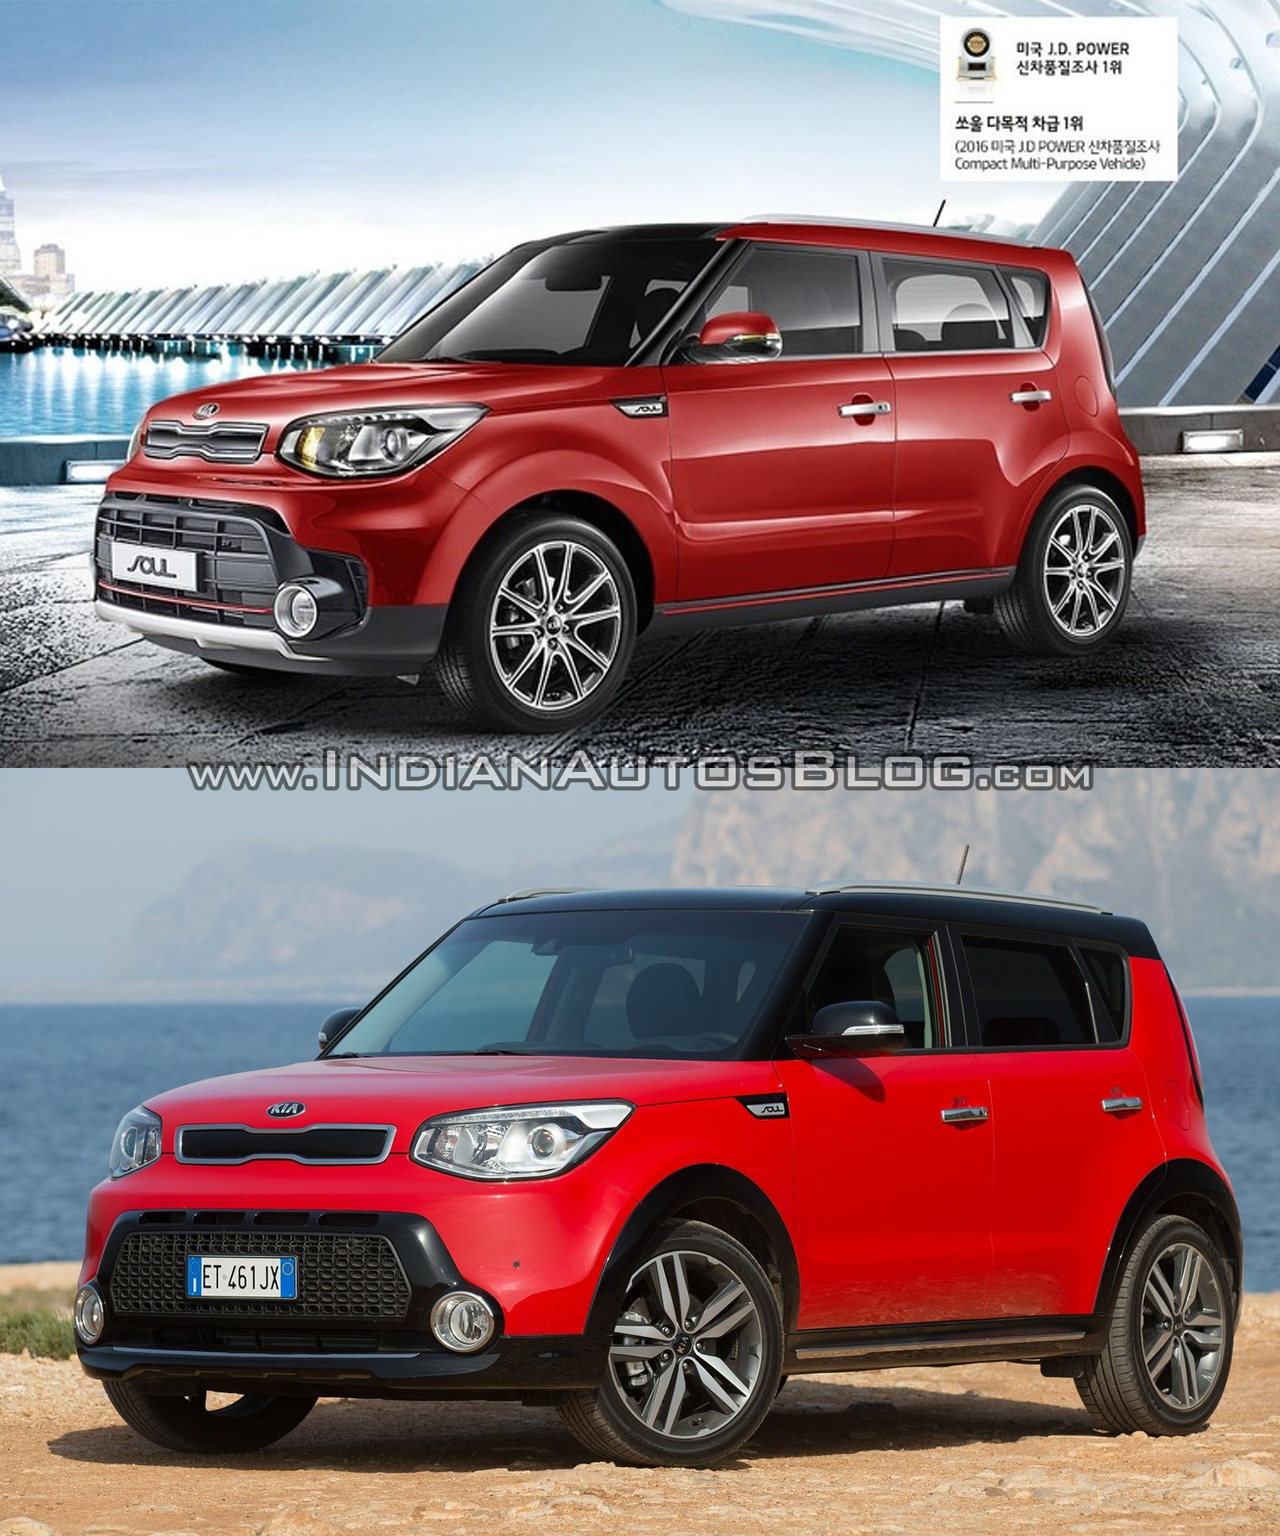 2016 Kia Soul (facelift) vs. 2014 Kia Soul front three quarters left side